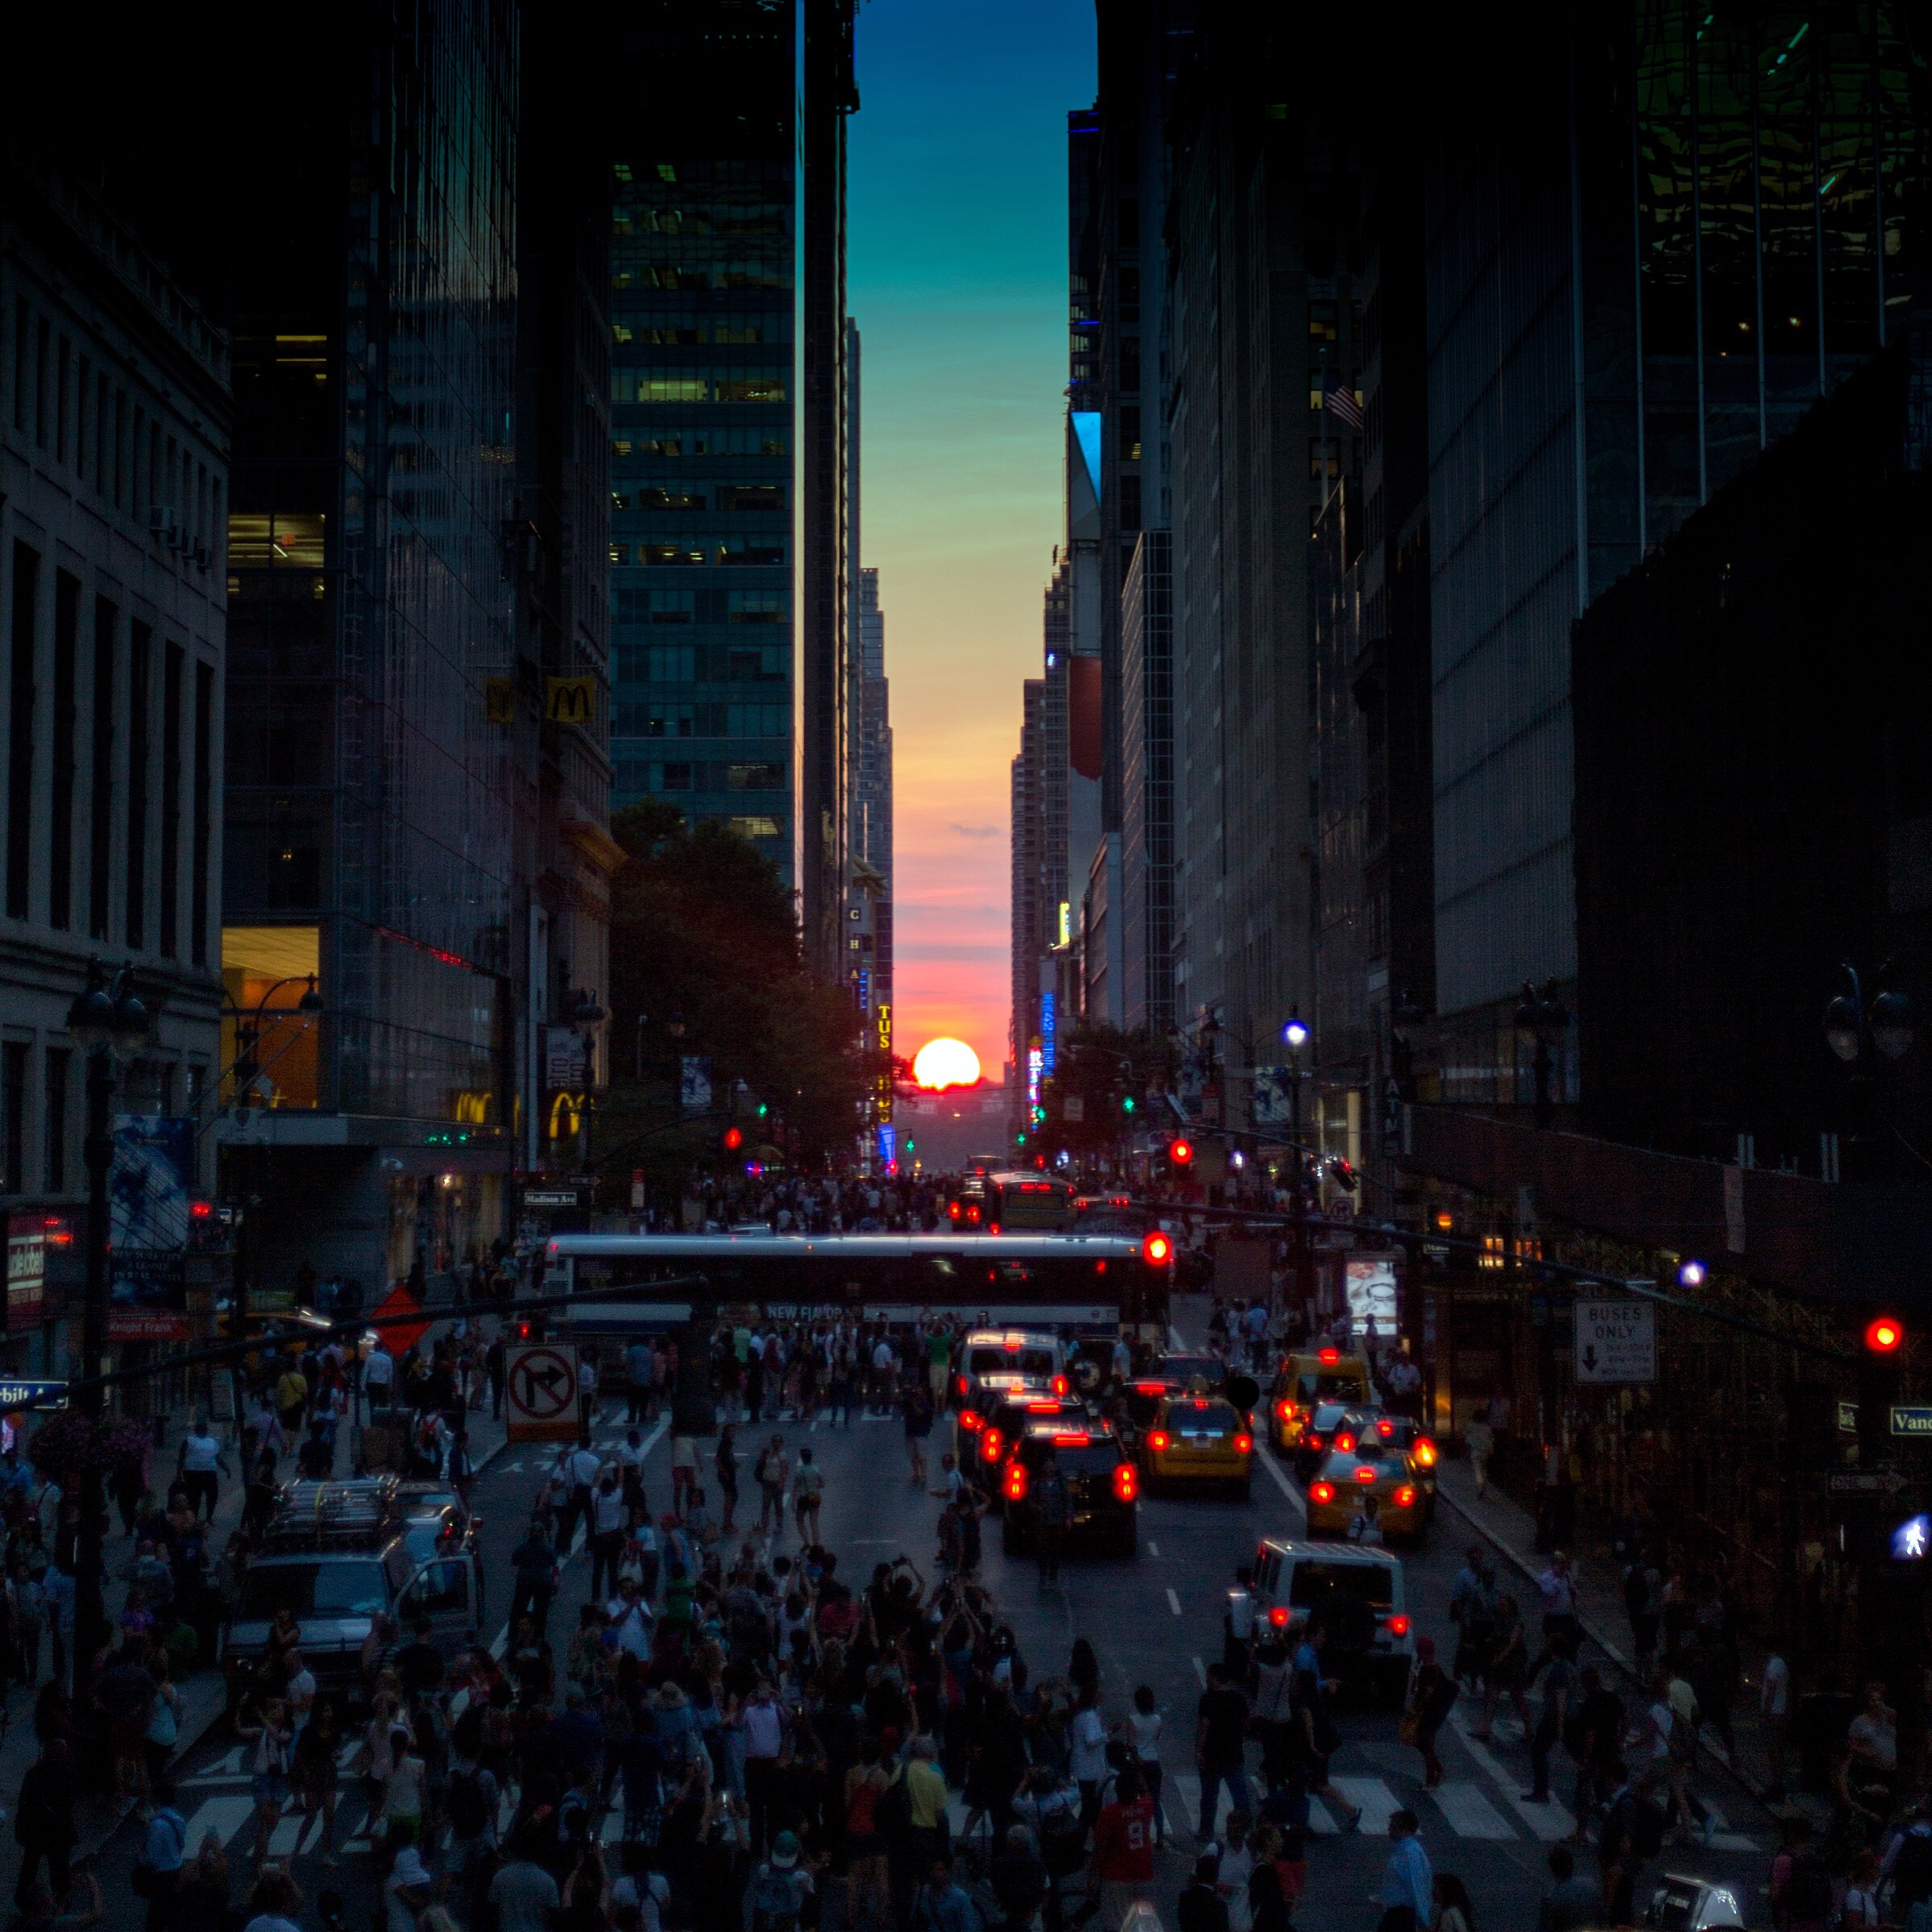 1. ManhattanHenge from the Park Avenue Viaduct,  Grand Central Terminal, NYC